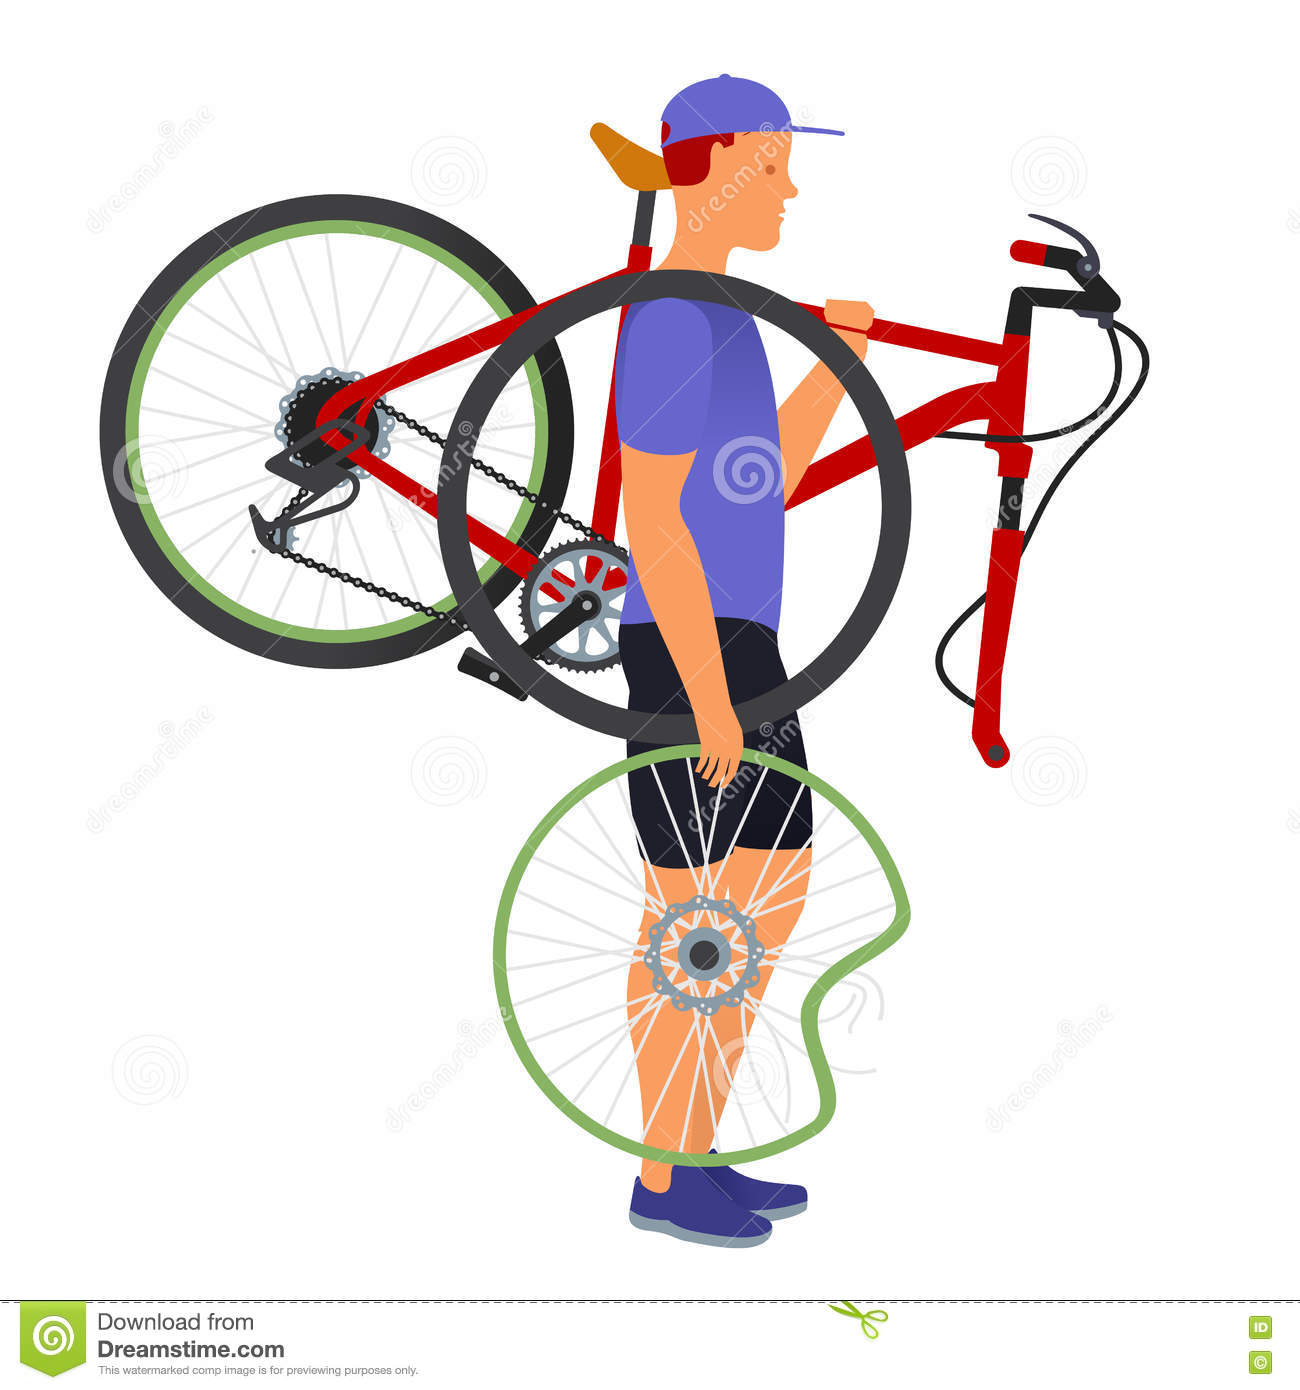 A Man Carries A Broken Bicycle And Wheel Stock Vector ...